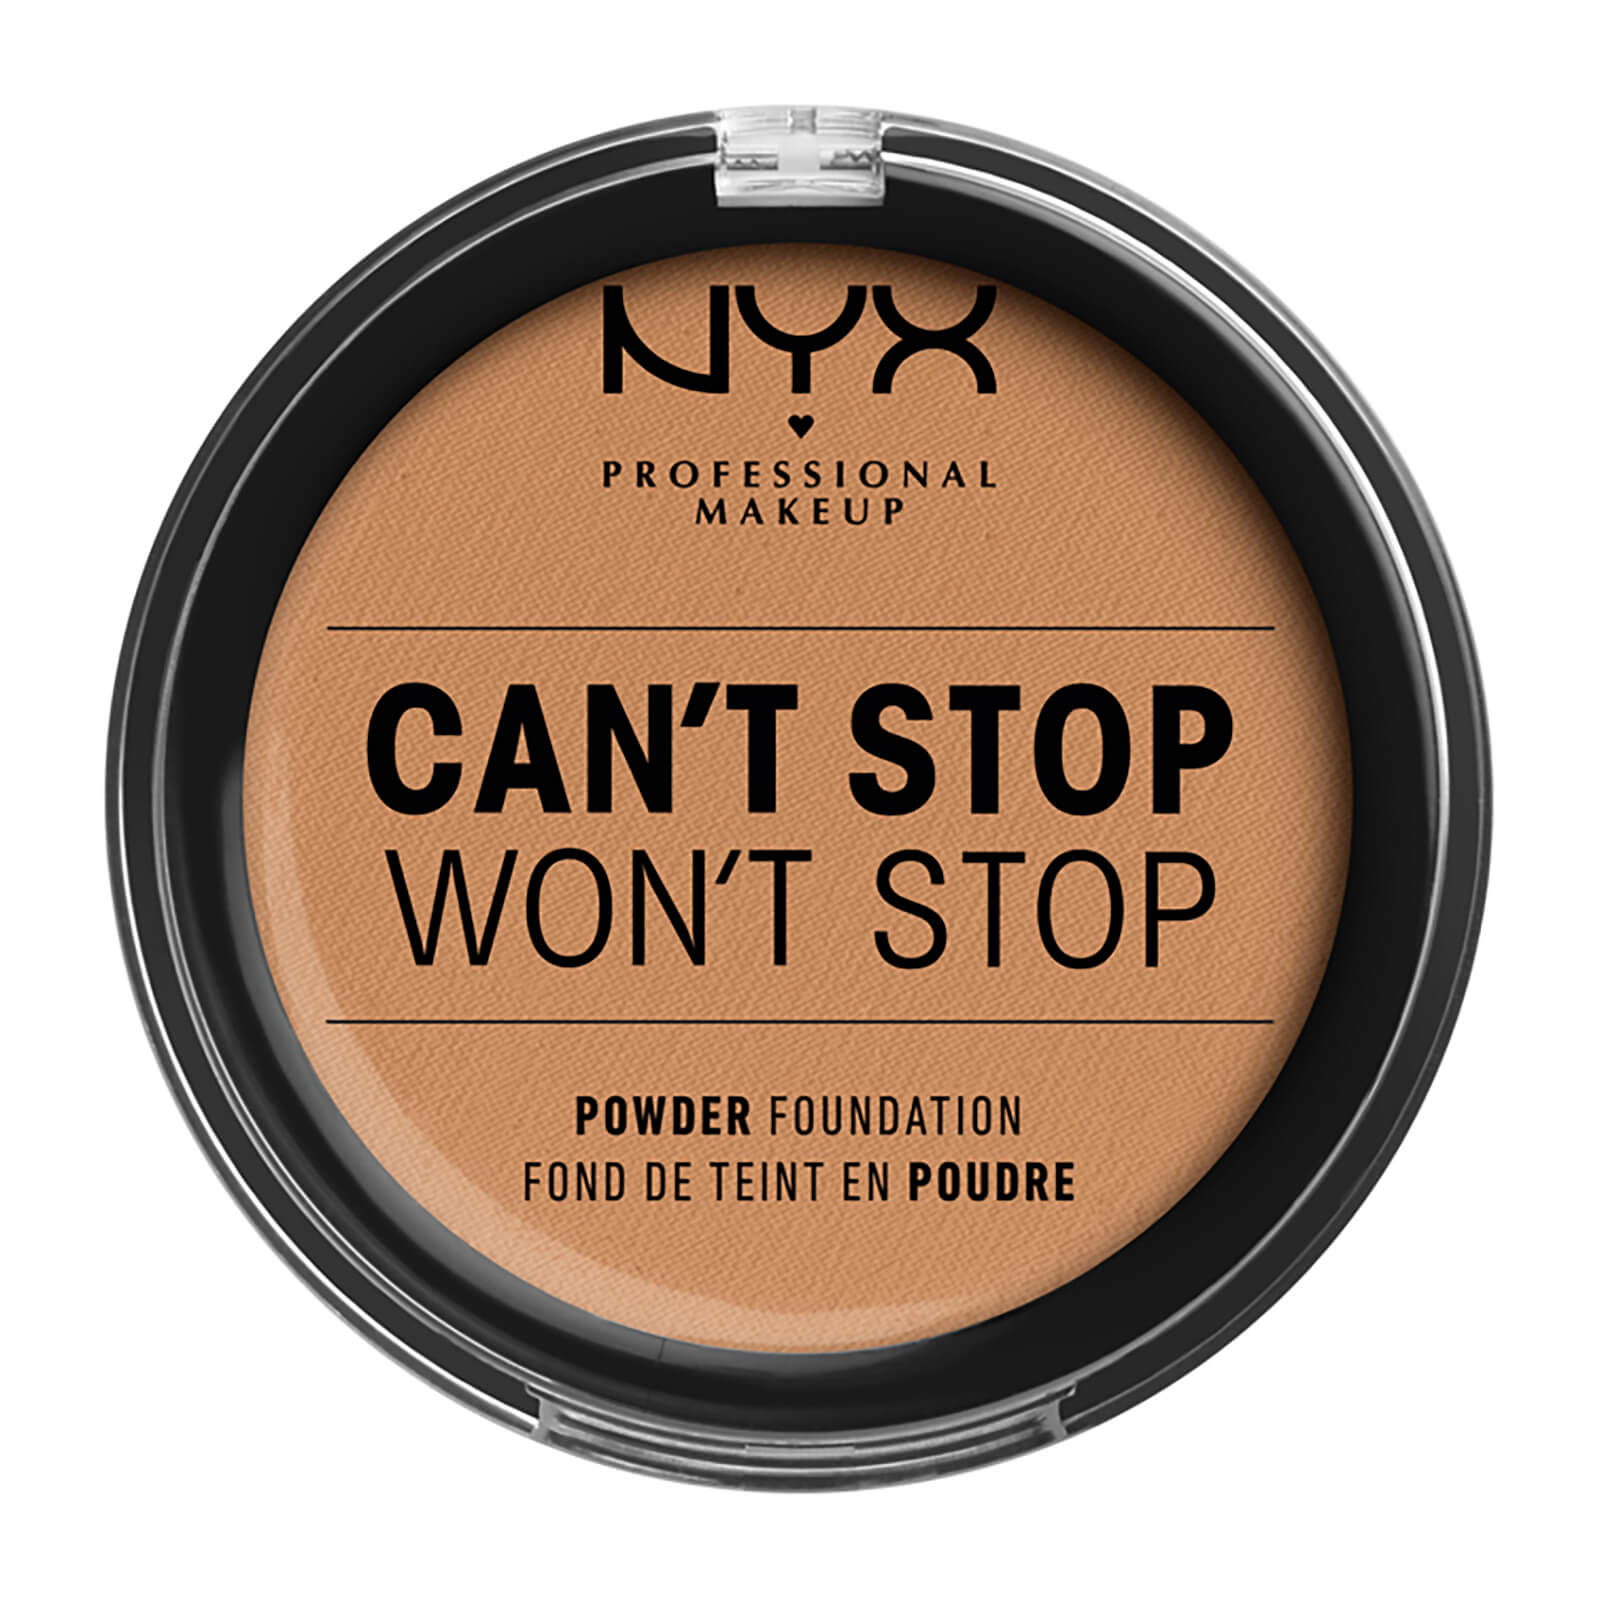 NYX Professional Makeup Can't Stop Won't Stop Powder Foundation (Various Shades) - Neutral Buff